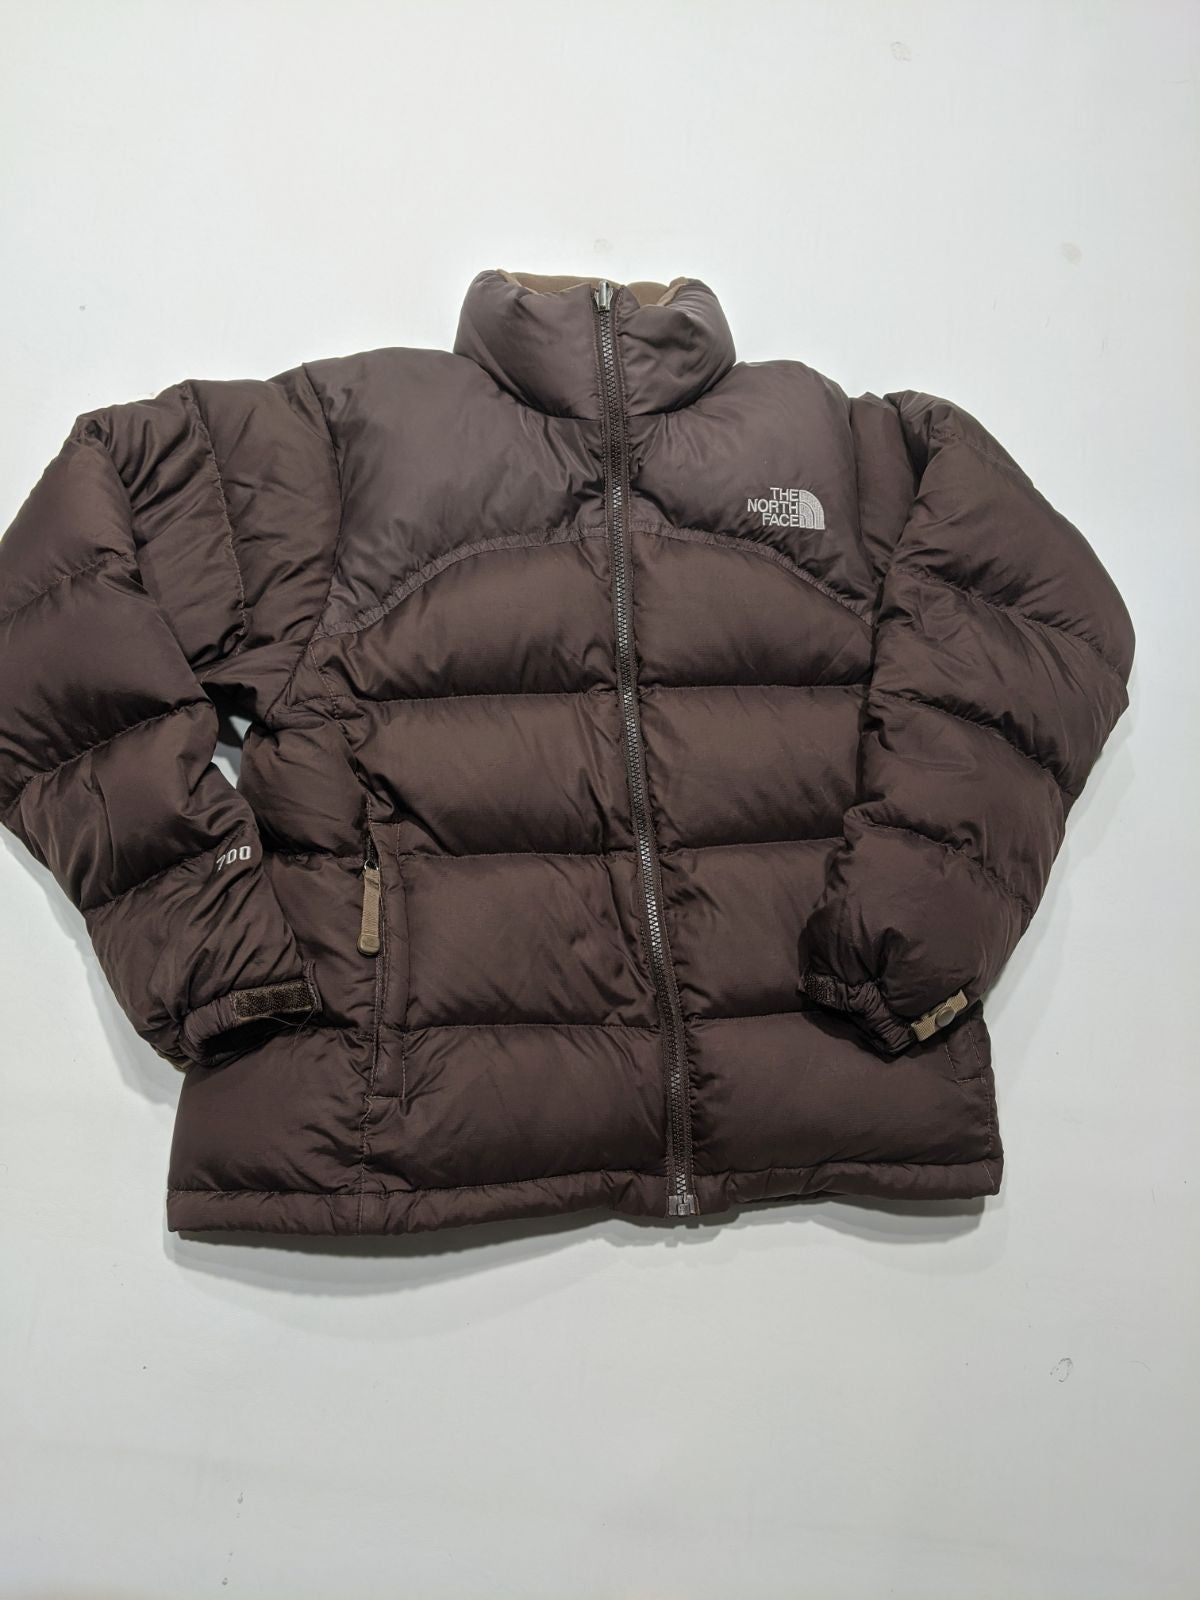 The North Face 700 Women S Small Brown North Face Jacket Brown North Face Puffer Jacket North Face Puffer Jacket Brown [ 1600 x 1200 Pixel ]